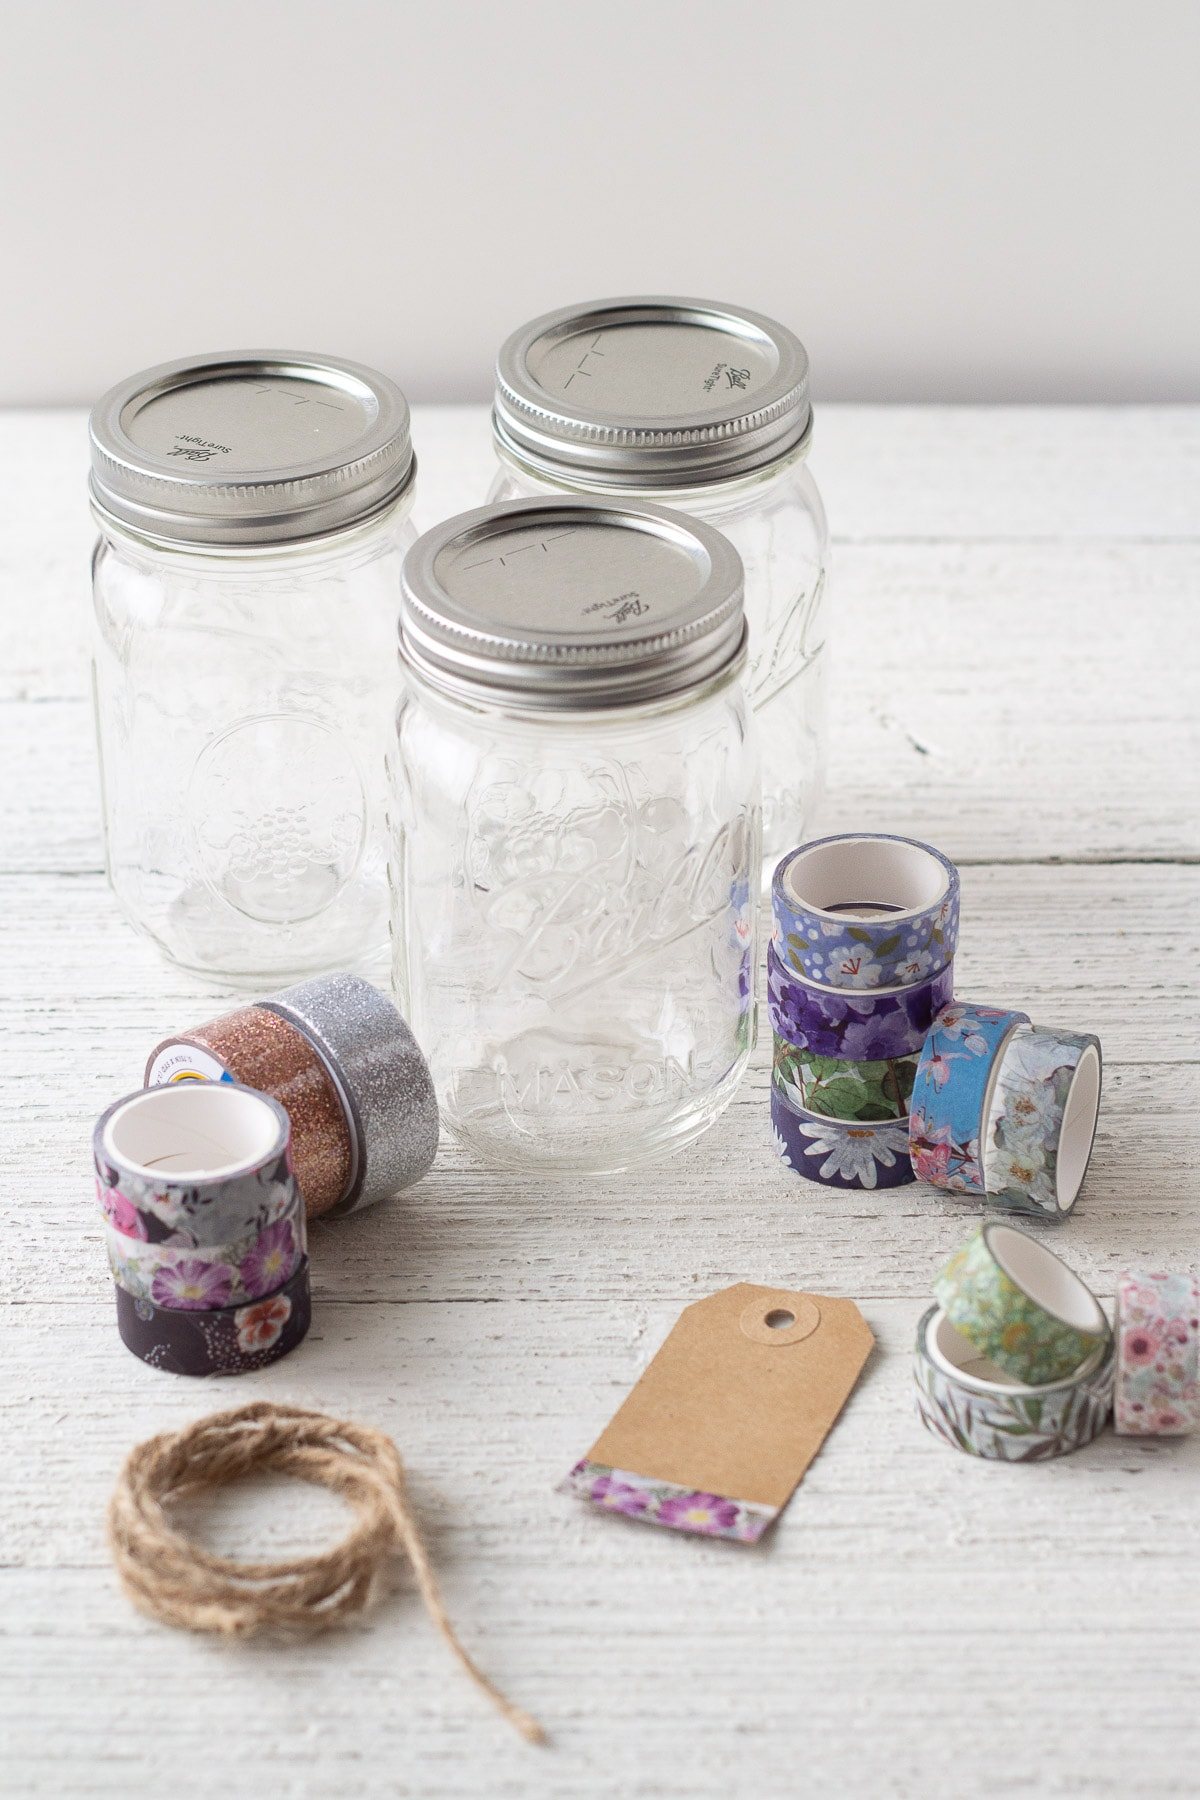 Mason jars, washi tape, twine, and a gift tag on a wooden surface.